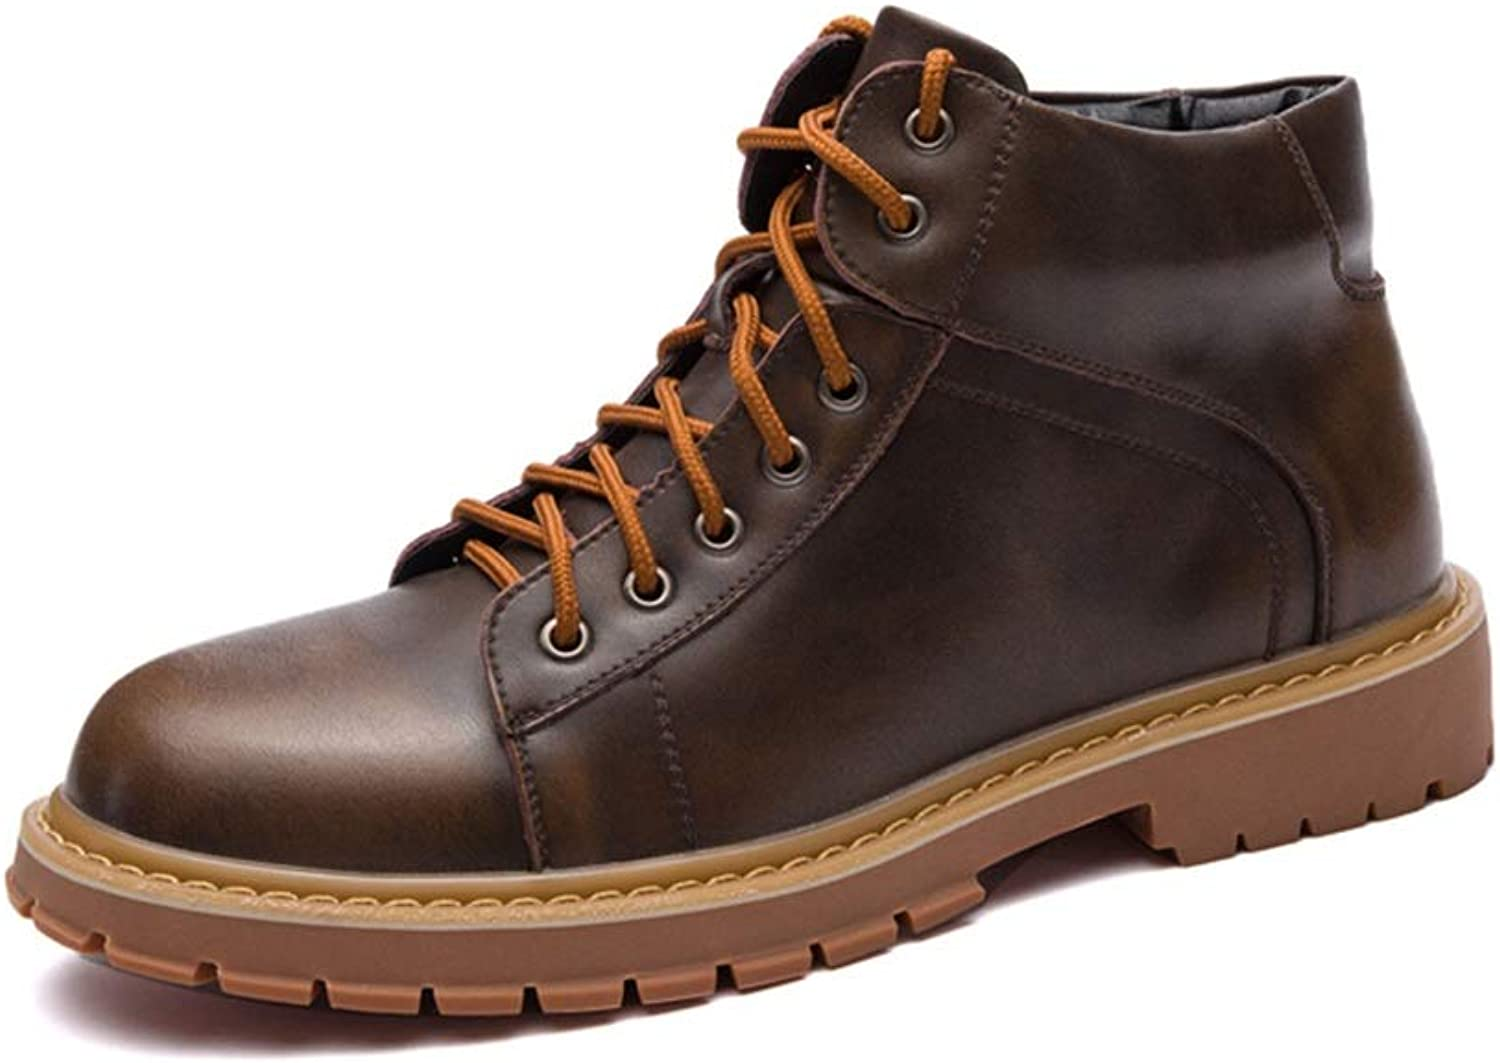 Men's Ankle Work Boot Casual Vintage Round Toe Lace Up British Style High Top Boot